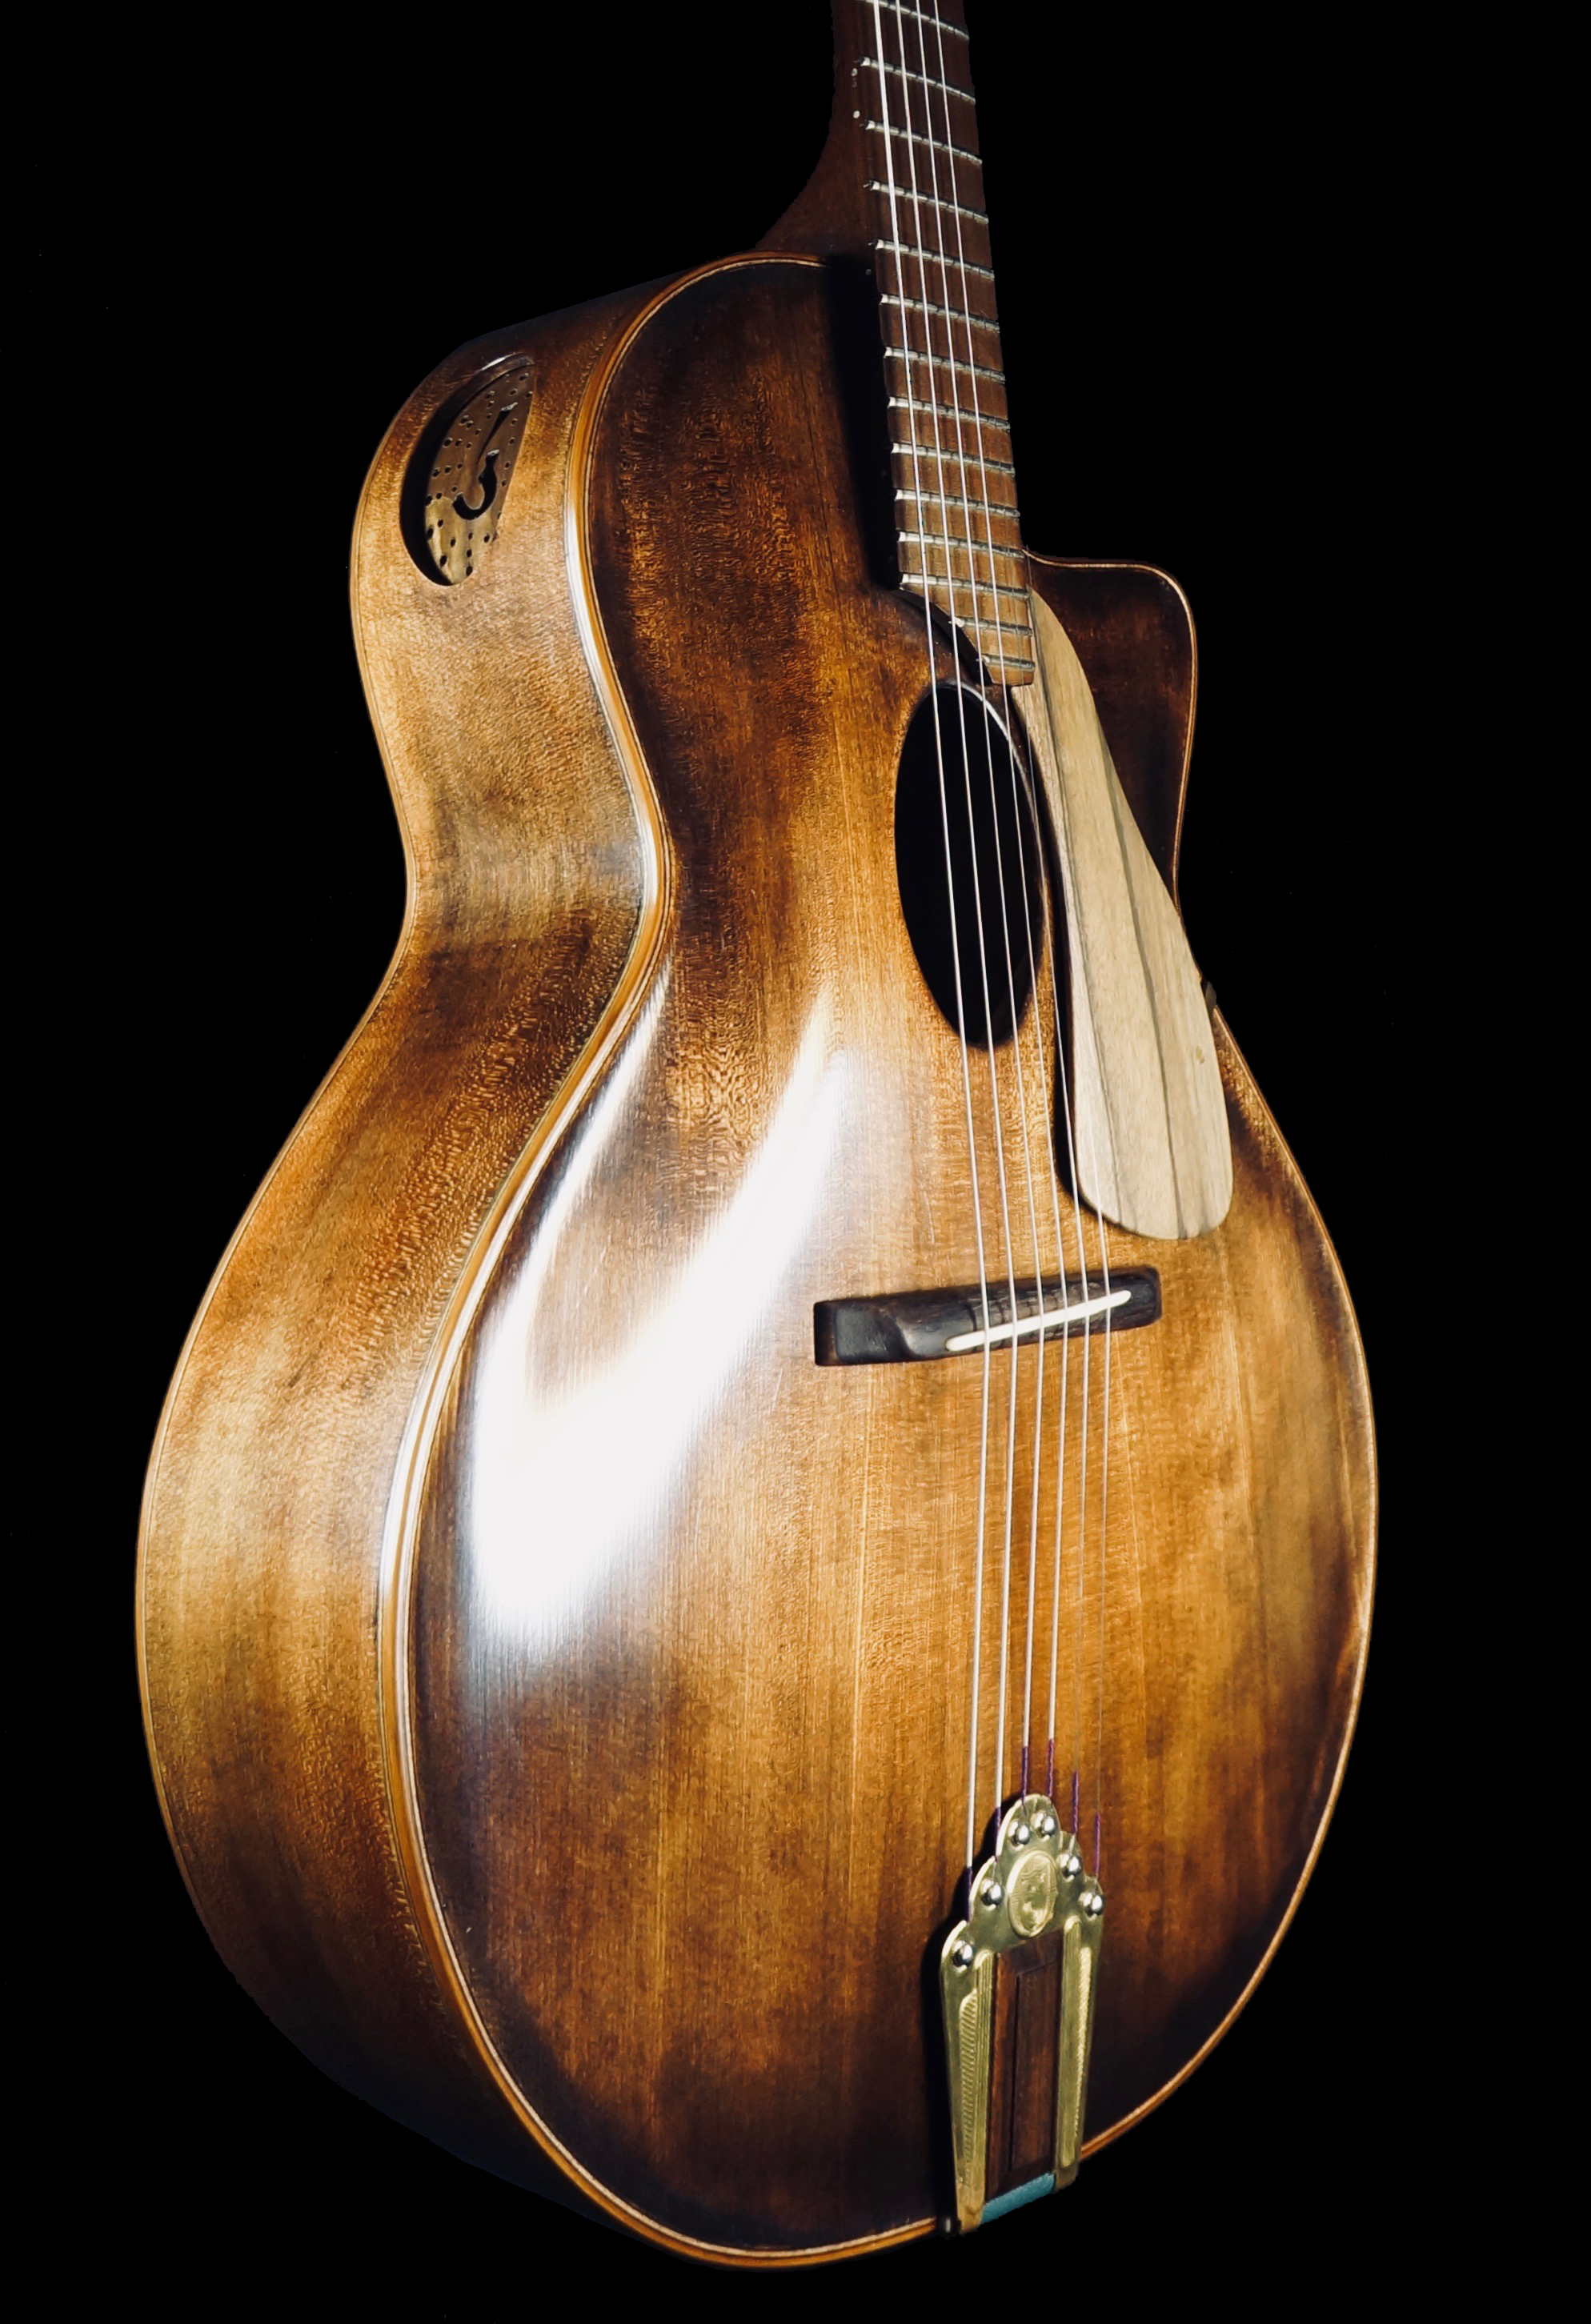 Bodio Guitar with fretboard and bottom from Sonowood walnut